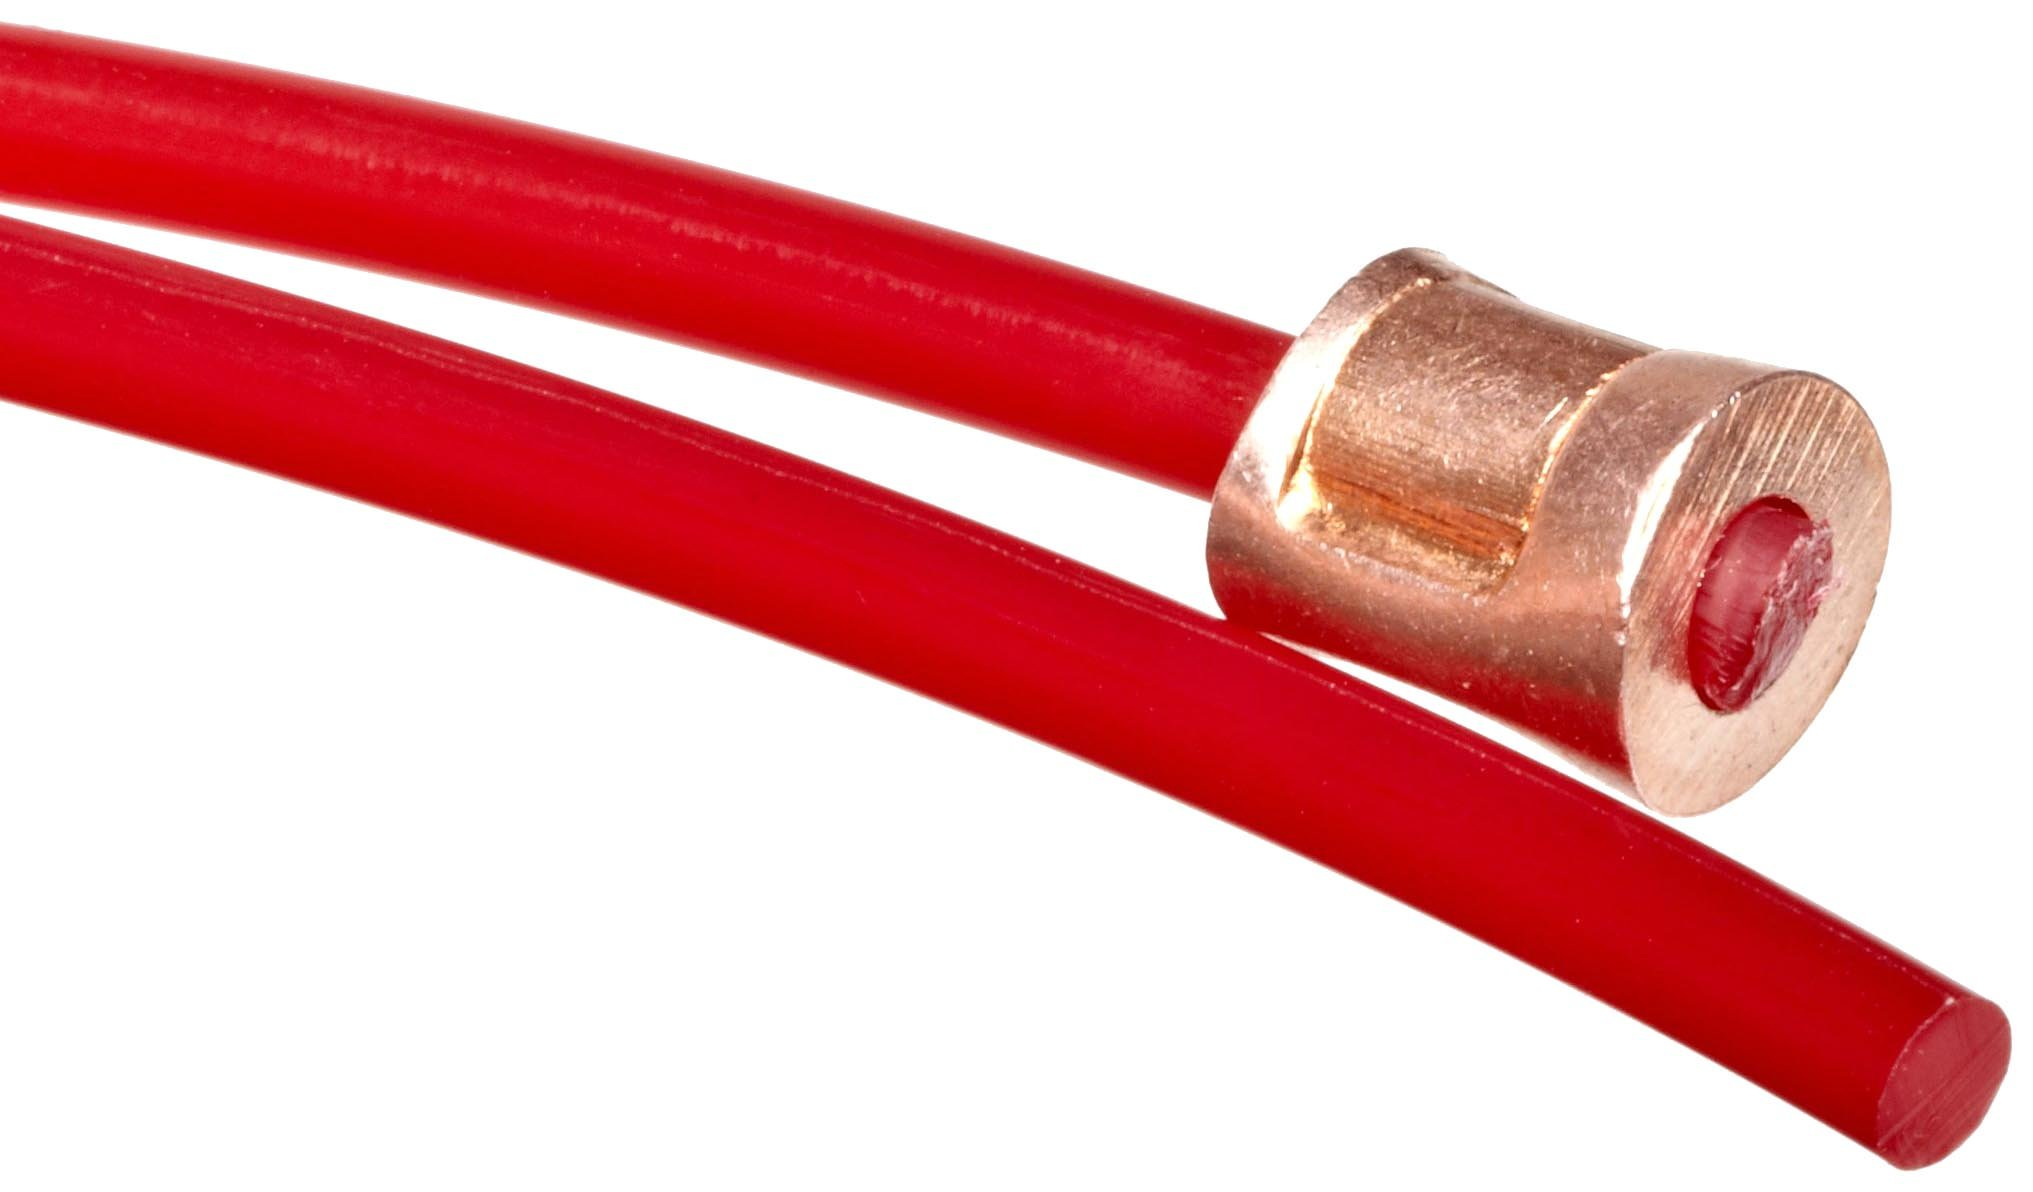 Brady 50948 12' Length, 1/8'' Diameter, Red Color Nonconductive Nylon Cable